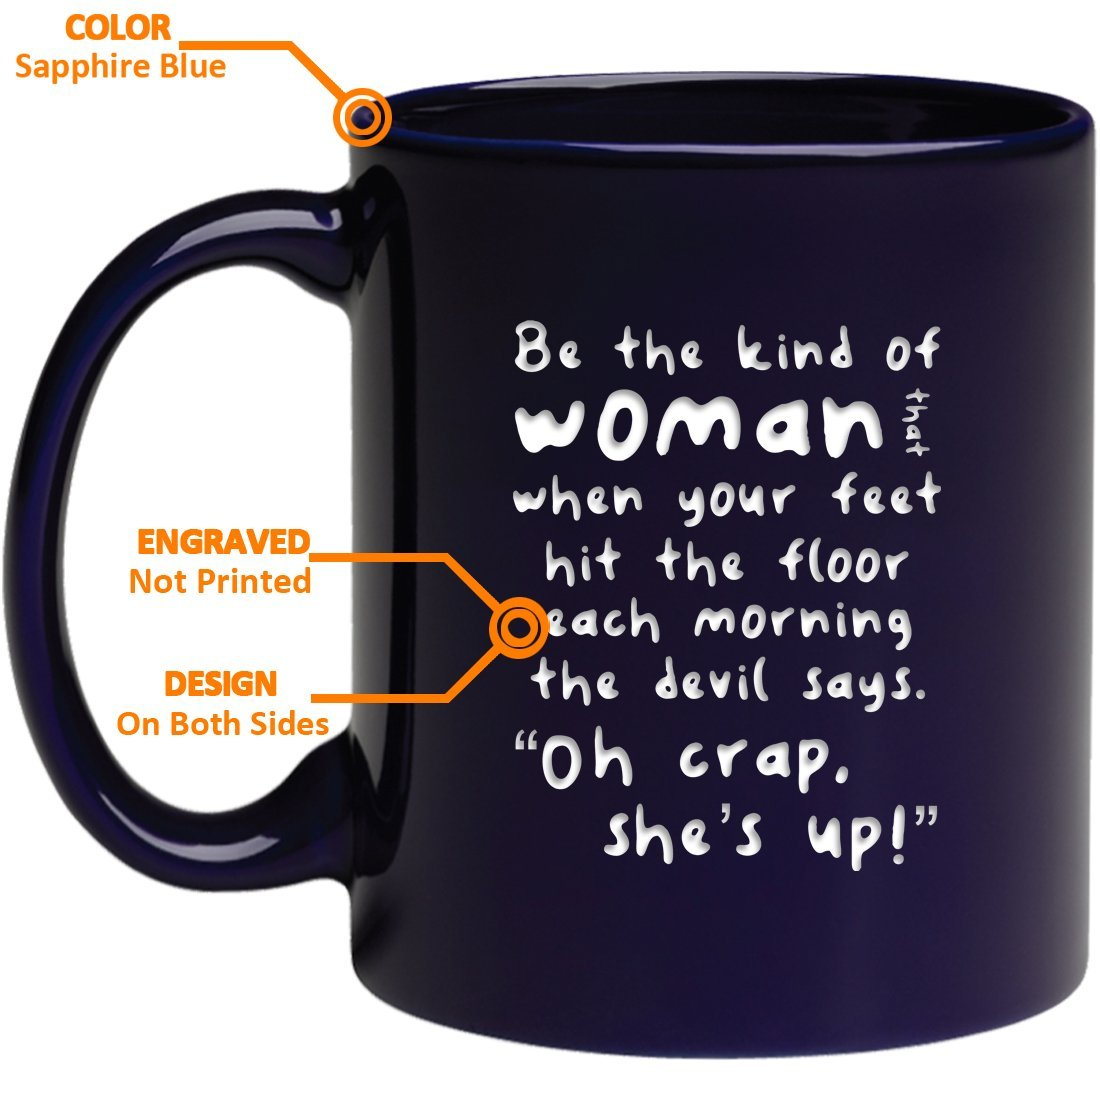 Engraved Ceramic Coffee Mug - Be the kind of woman that when your feet hit the floor each morning the devil says'' - Bible Quotes, Christian and church